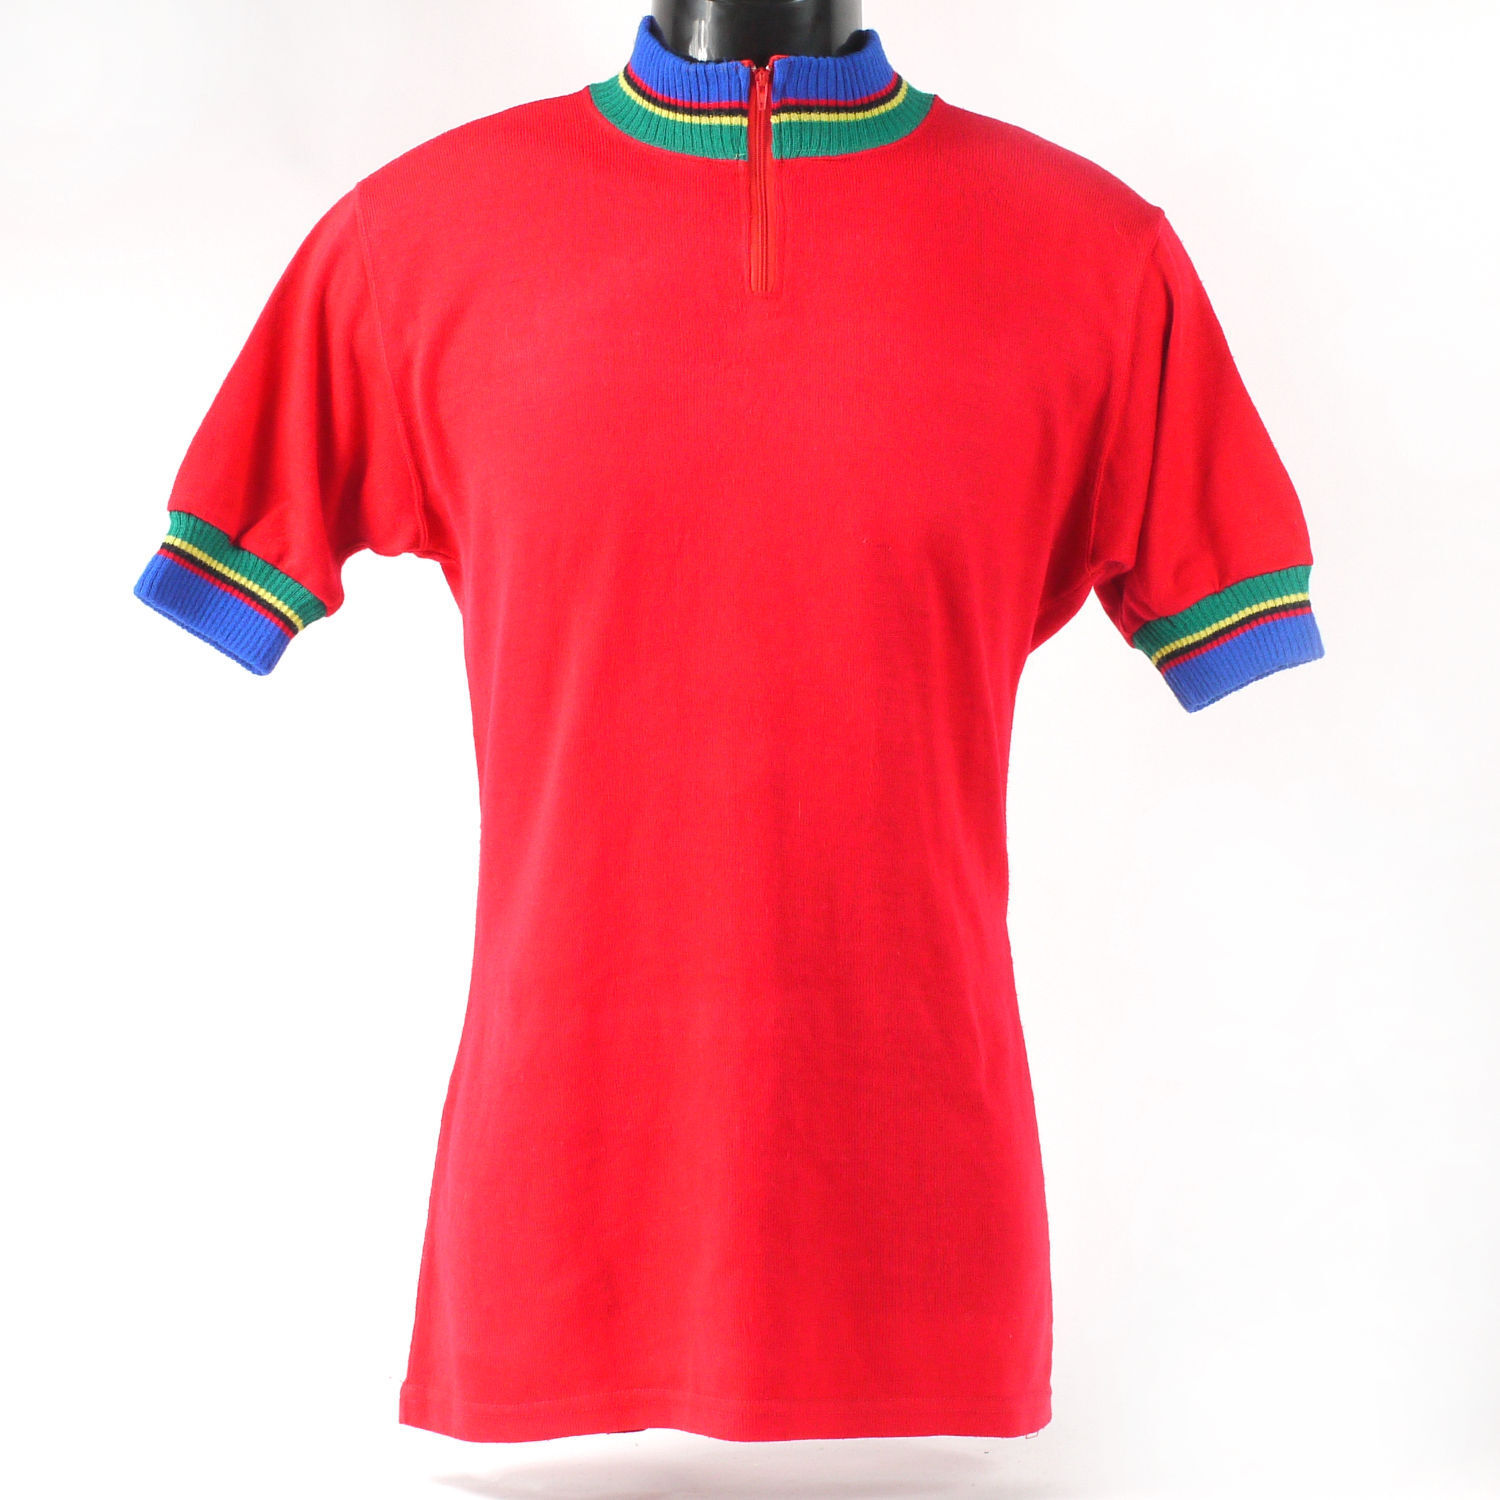 VIntage cycling jersey in red